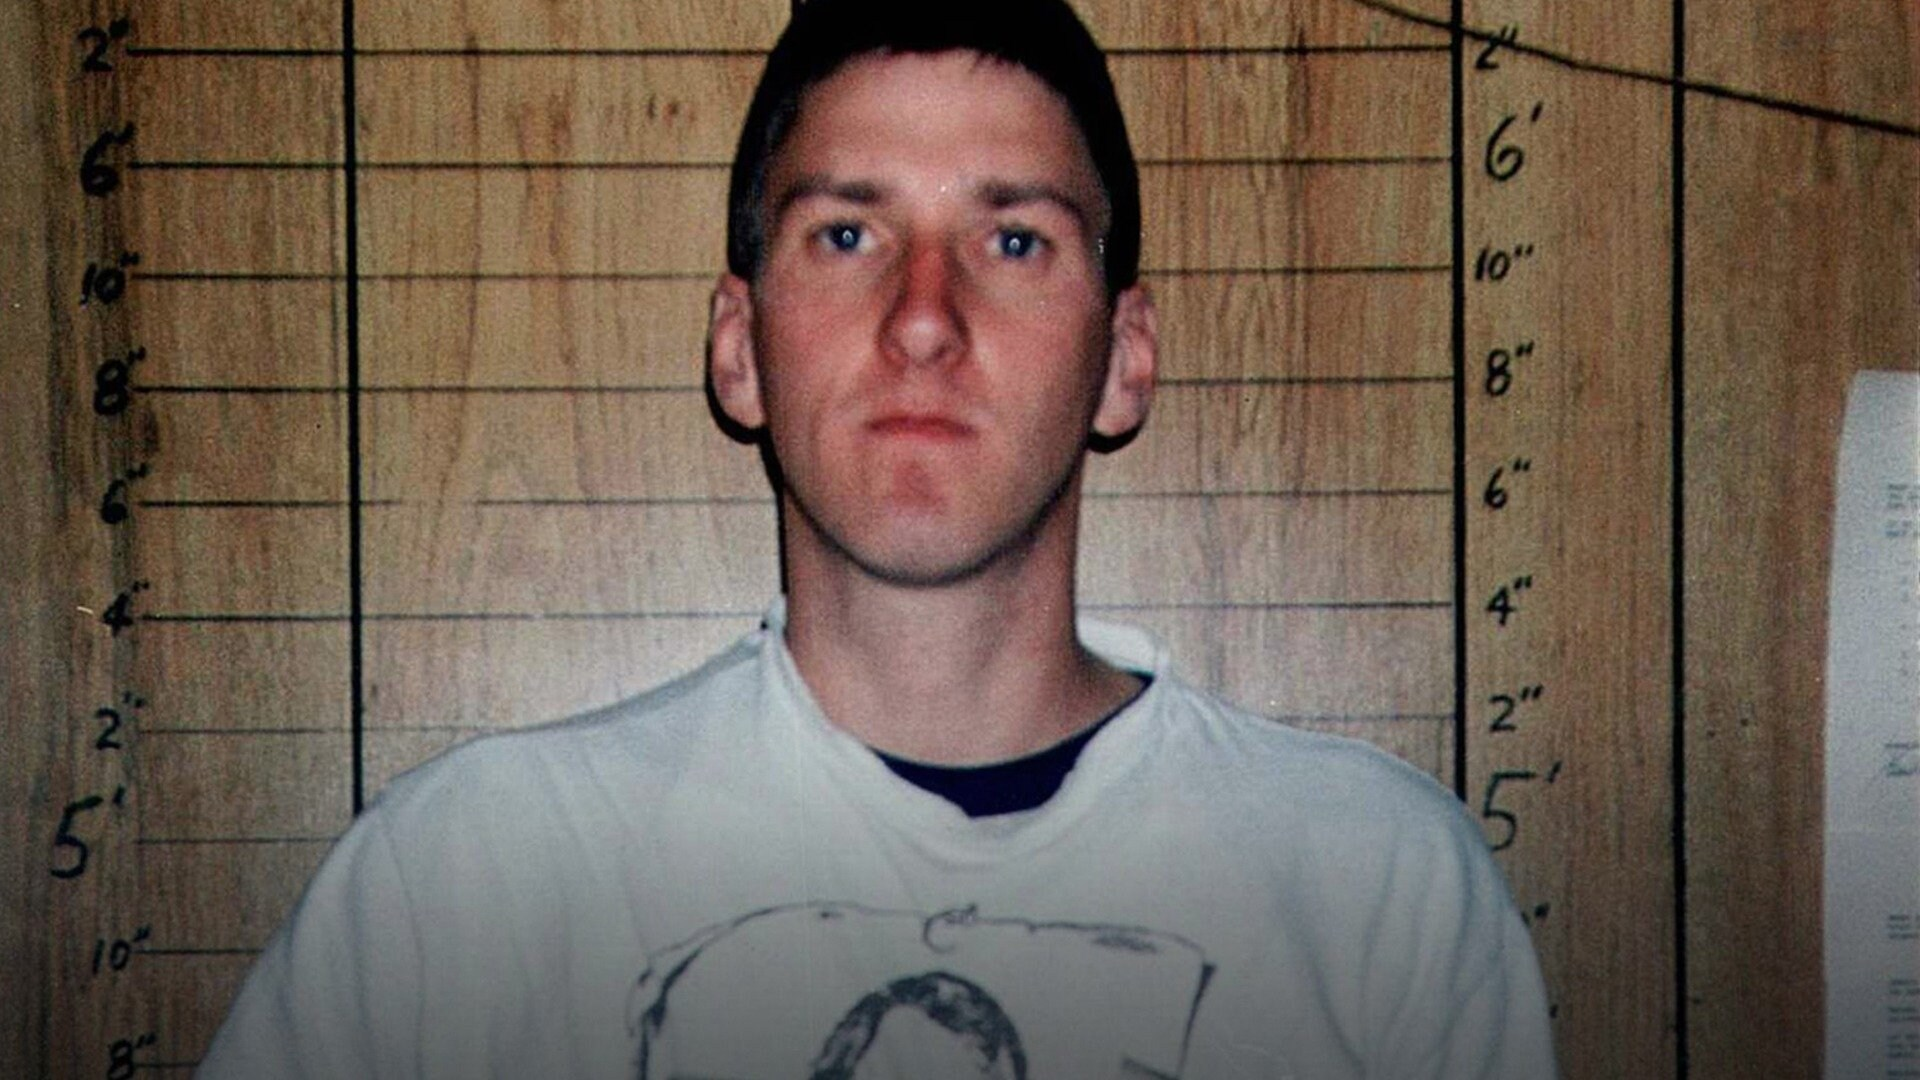 Timothy McVeigh: In Defense of